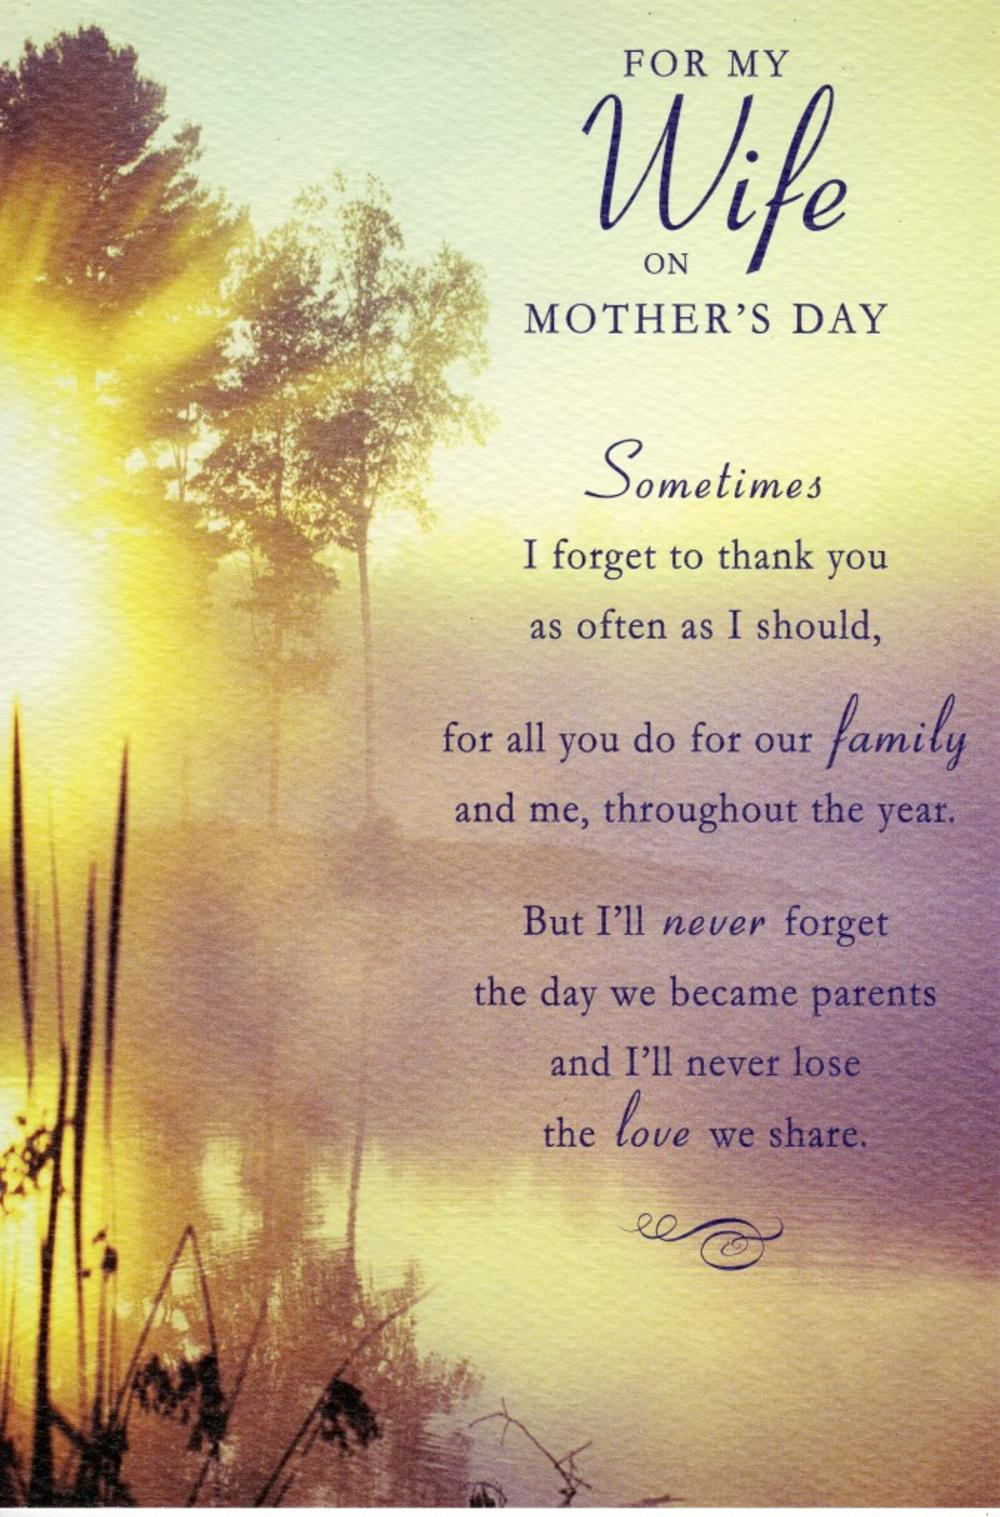 Wife Lovely Sentiment Mother's Day Card